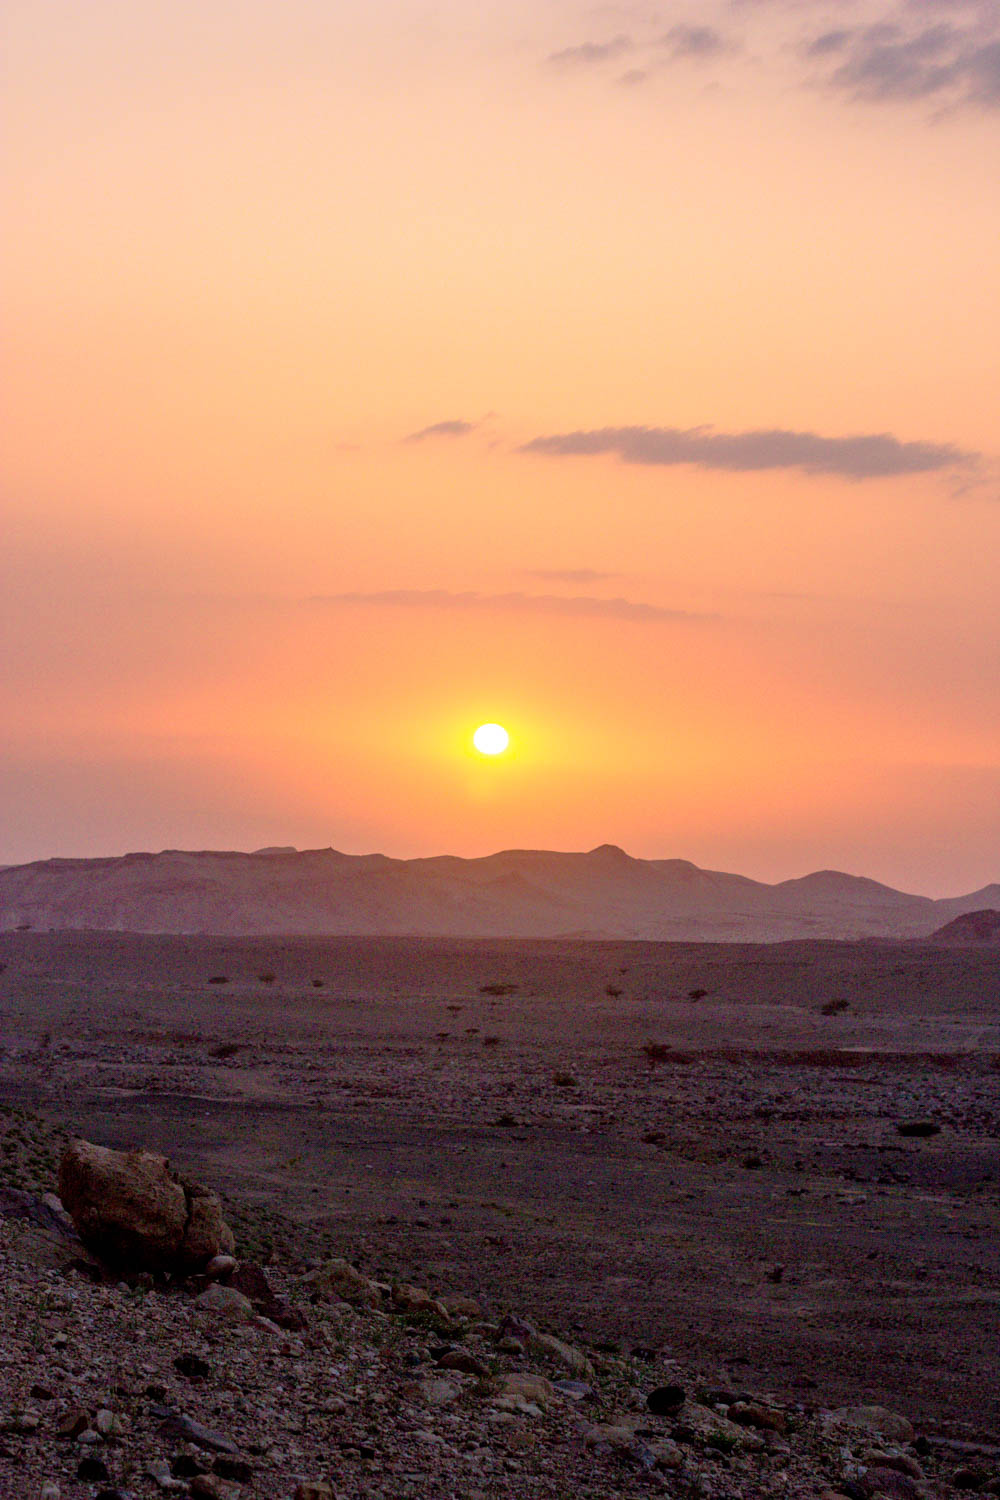 Sunset in the Feynan Reserve